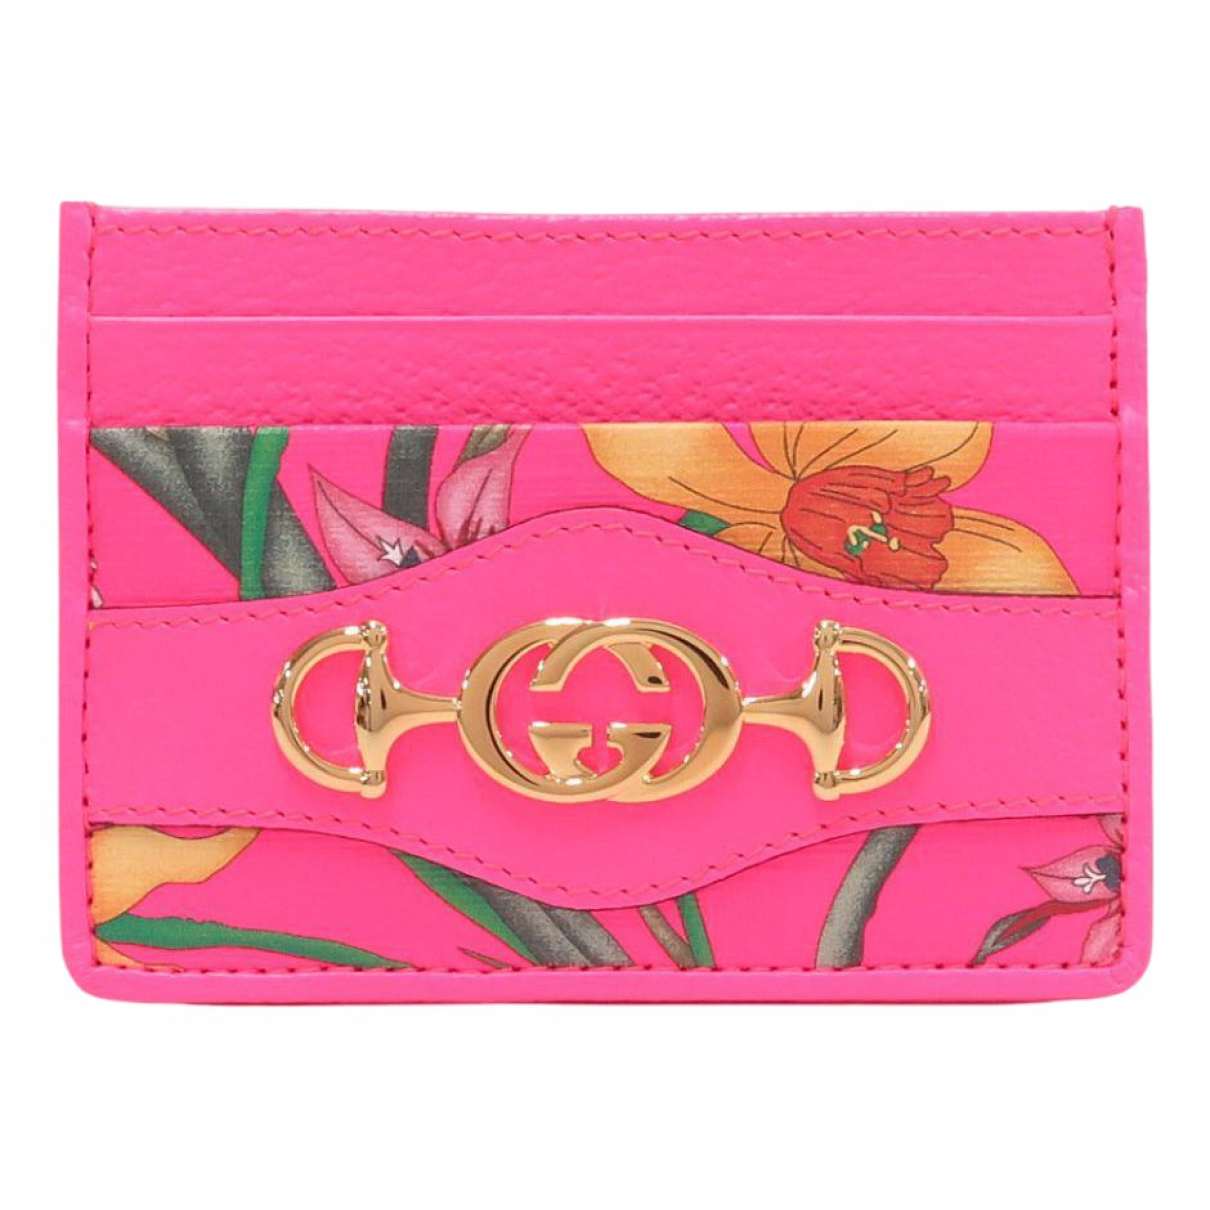 Gucci Zumi Pink Leather Purses, wallet & cases for Women N